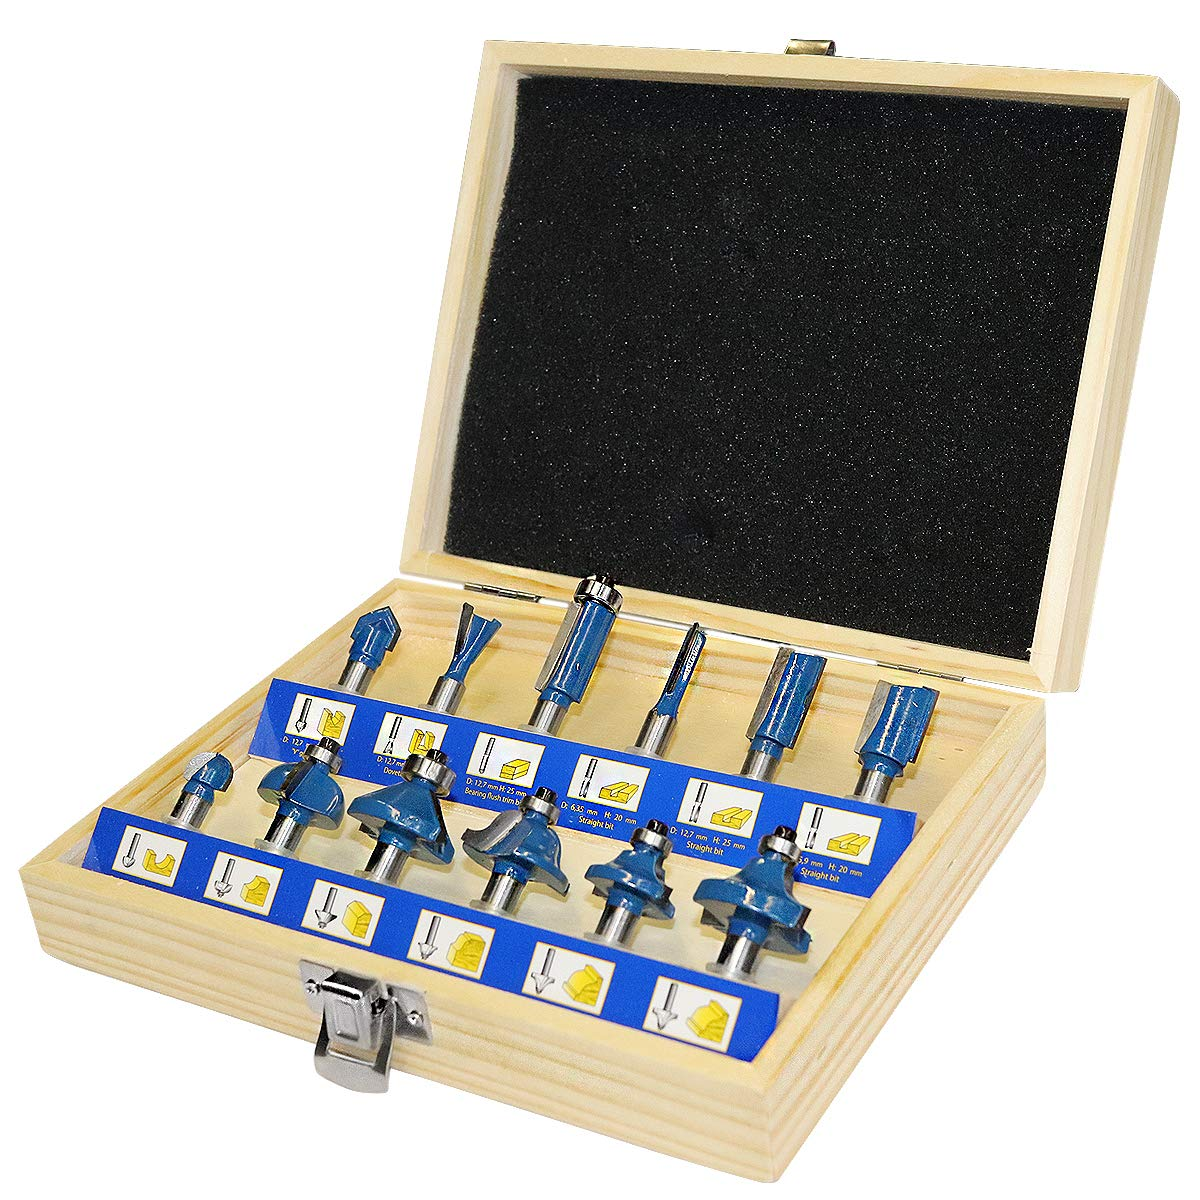 """S&R Router Bits Set for Wood, 8 mm Shank, 12 pcs. - Extra Hardened Tungsten Carbide Cutting Edges, Milling Machine/Router Drill Bits for Woodwoorking                TACKLFIE 19pcs Router Bit Sets, Wood Milling Saw Cutter with 4pcs Extra Bearing Sets, C3 Micro-Grain Tungsten Carbide Tipped Router Bit Set with 6mm Shank Fittings for Home & DIY                VonHaus 35 Pc Router Bits Set - TCT Tungsten Carbide Tipped Accessories Set Kit - 6.35mm (1/4"""") Shank Fittings                Bosch 2607019462, 6 Piece Router Set, Silver/Black"""